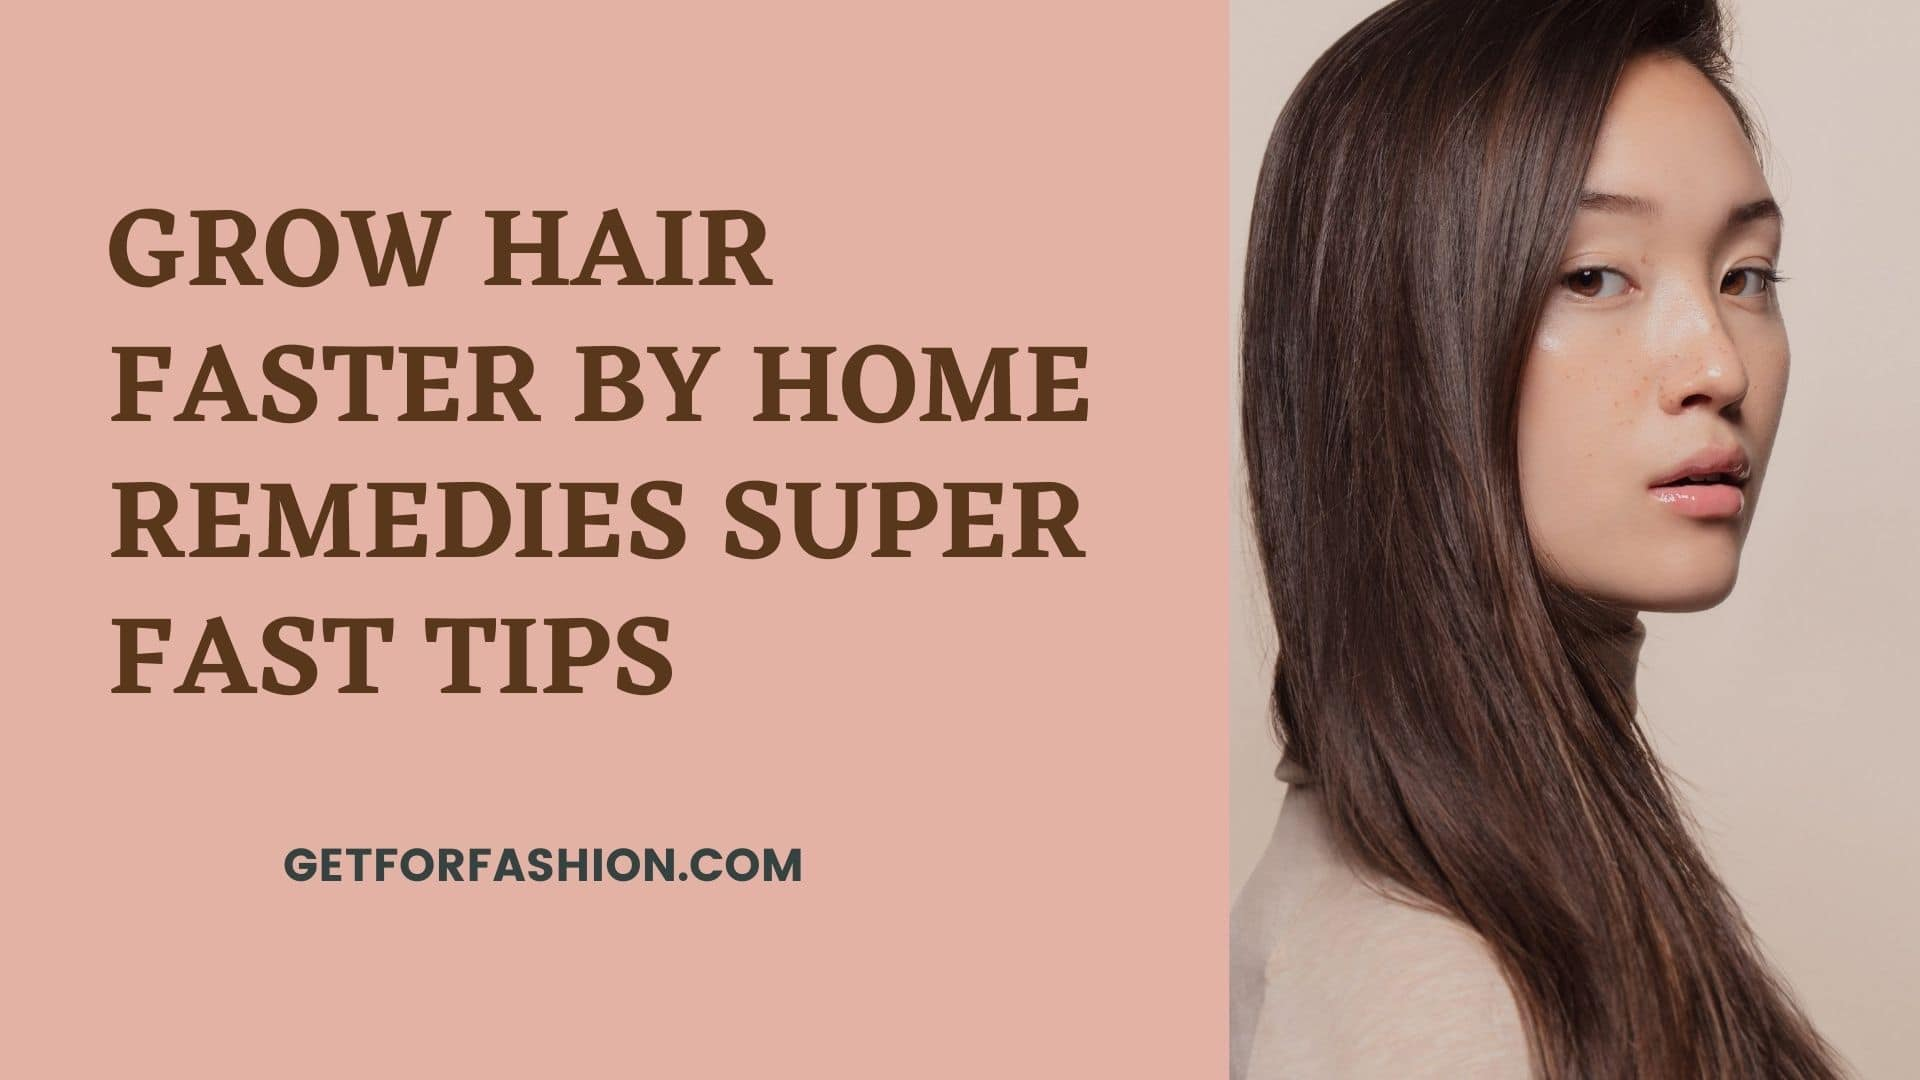 Grow Hair faster by Home Remedies super fast tips